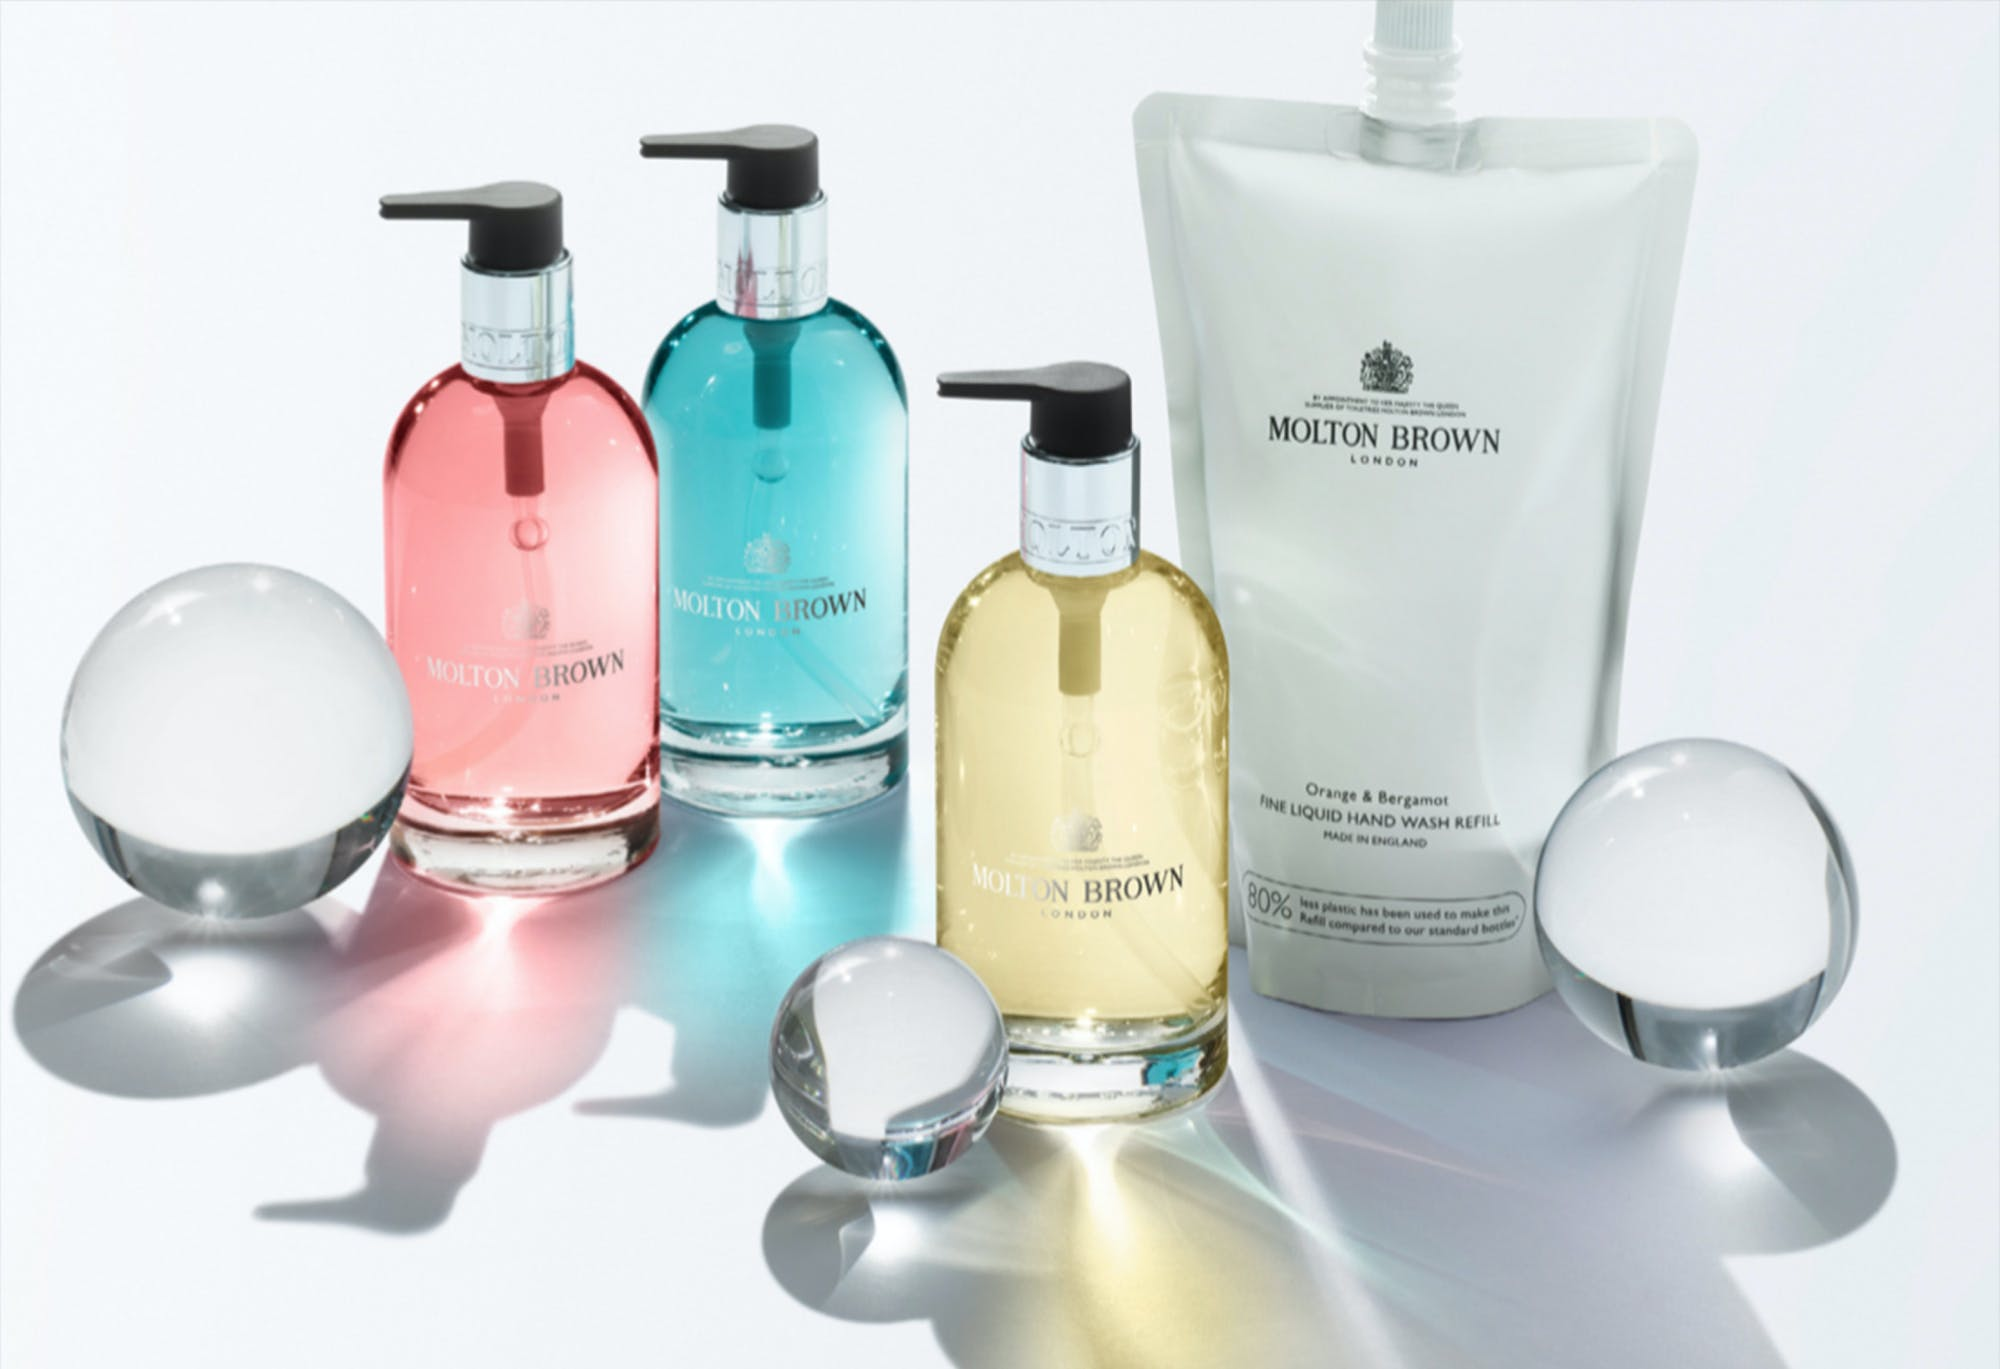 Walpole Insight Packaging: Achieving a balance between luxury and sustainability